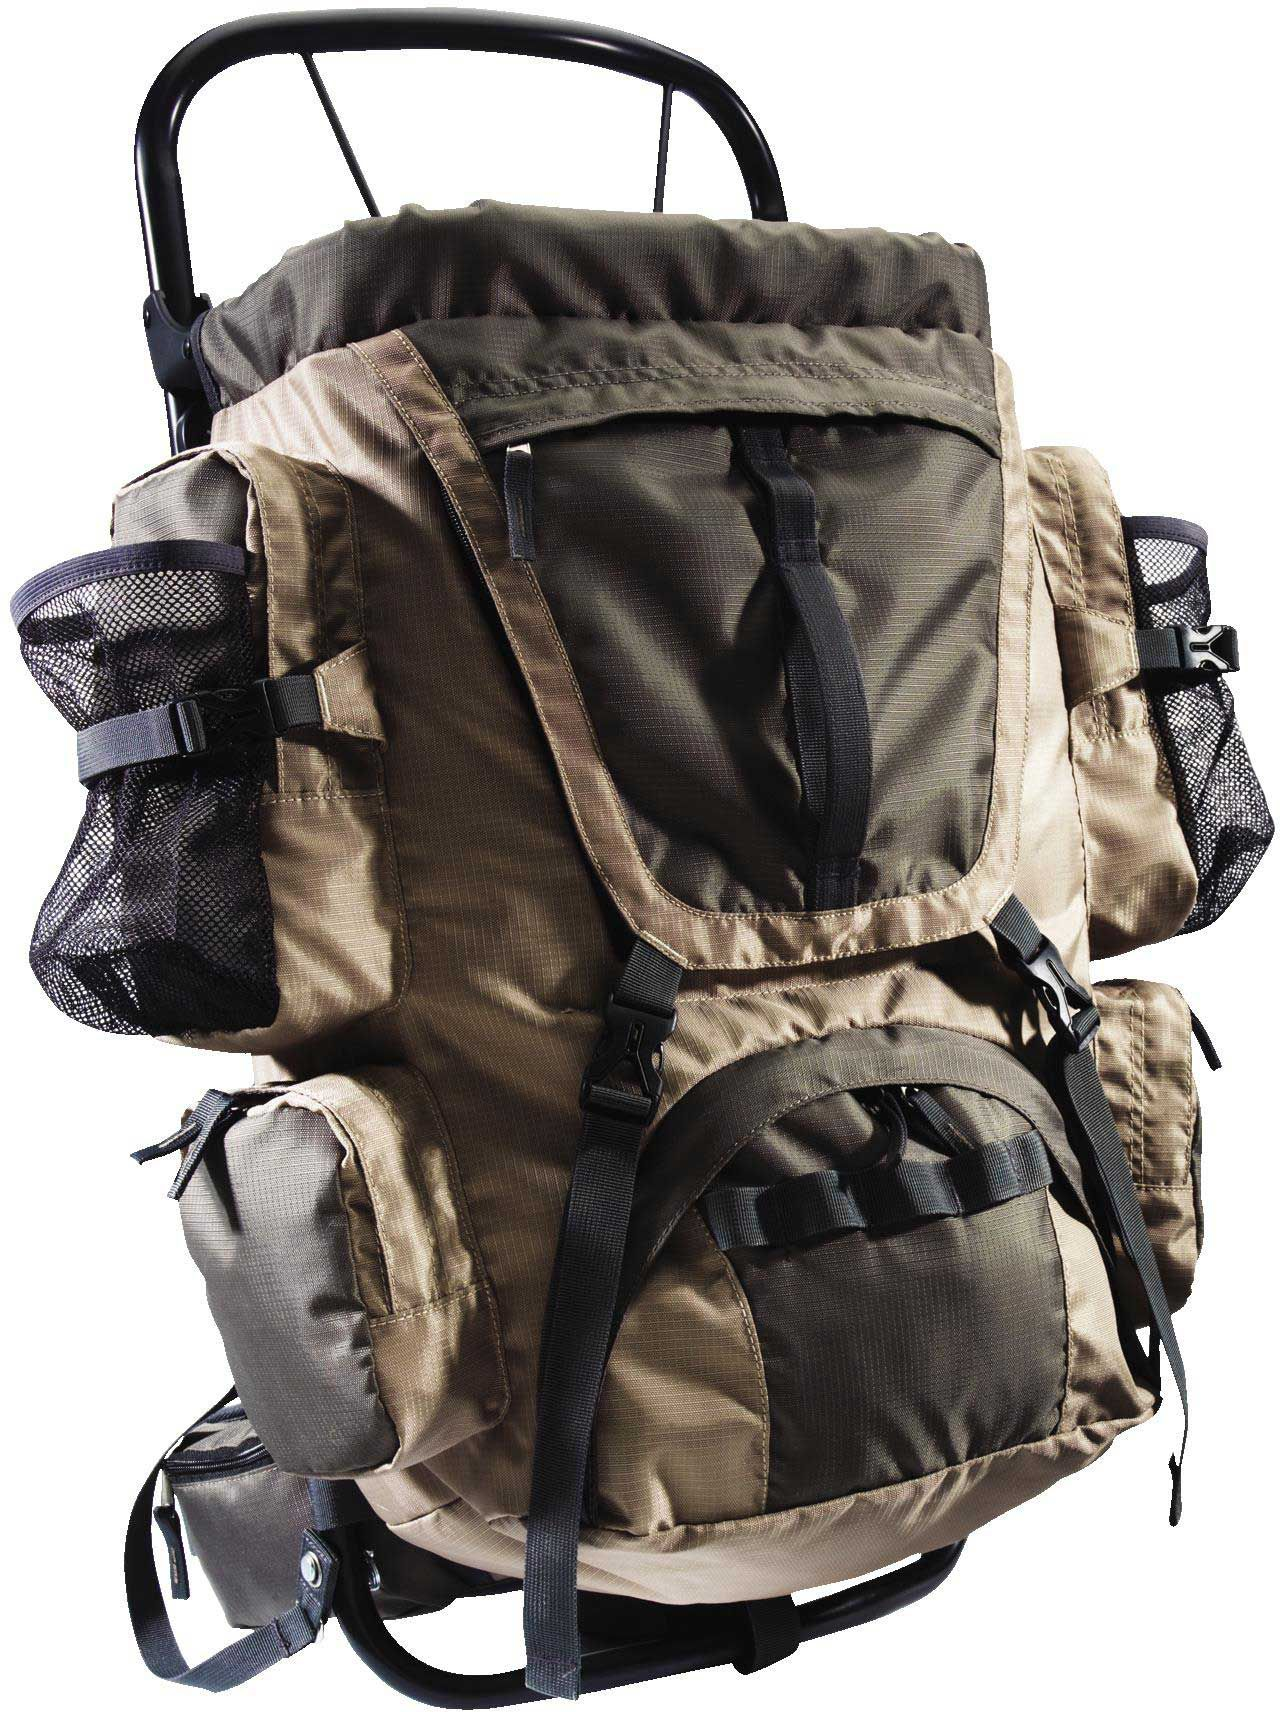 Hiking Backpack With Frame Crazy Backpacks